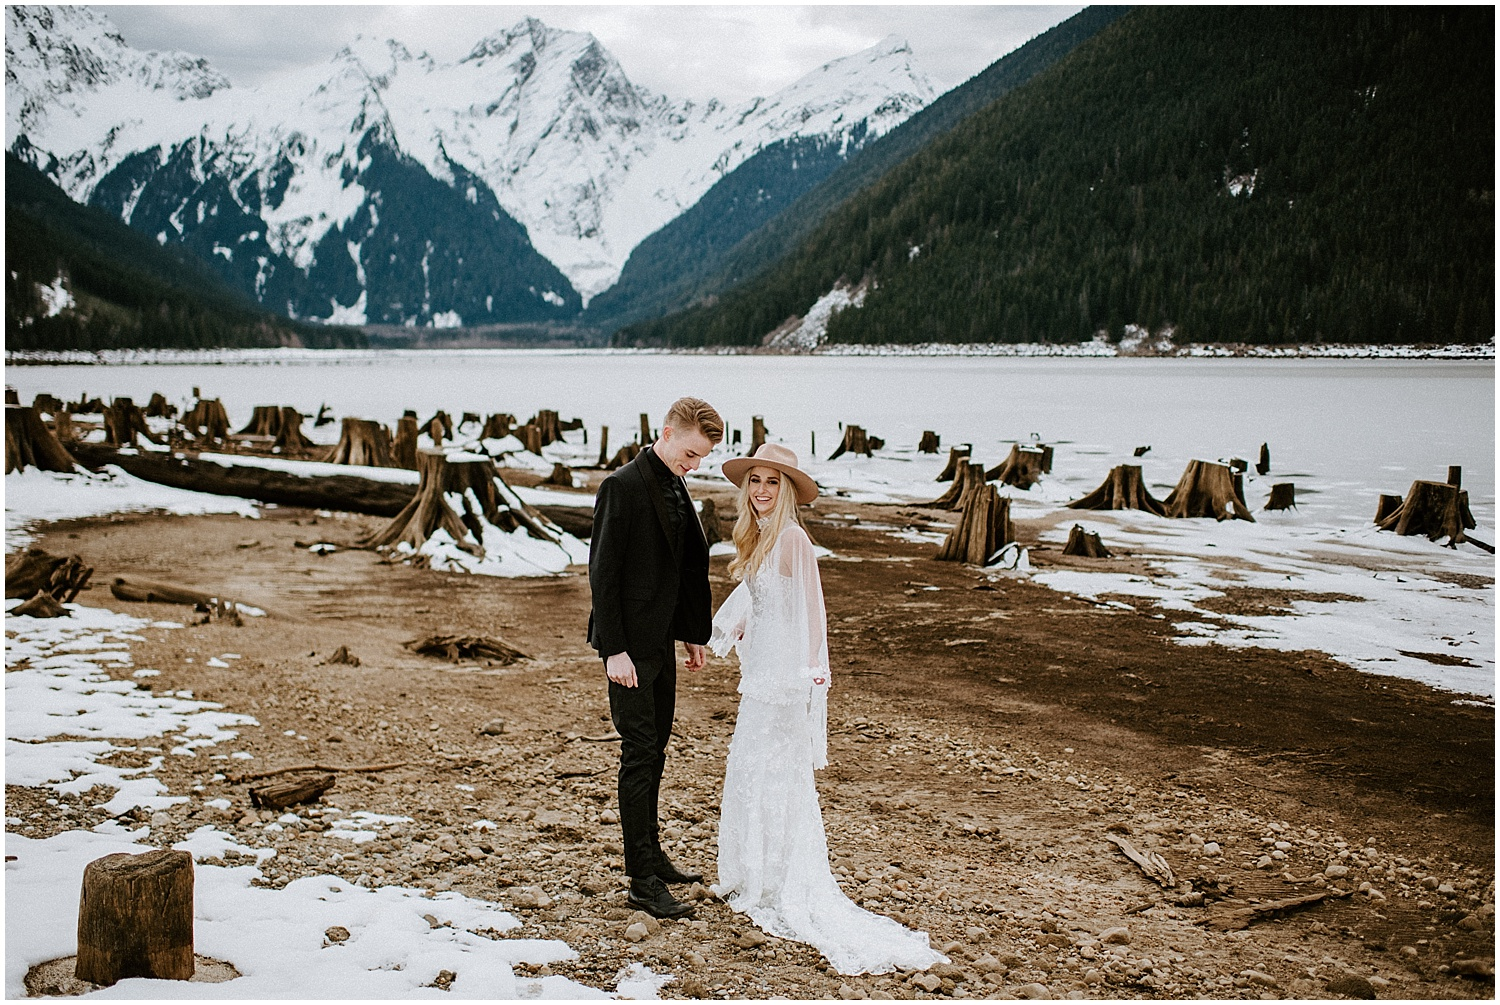 Jones_Lake_wedding_winter_elopement_vancouver_photographer_0264.jpg